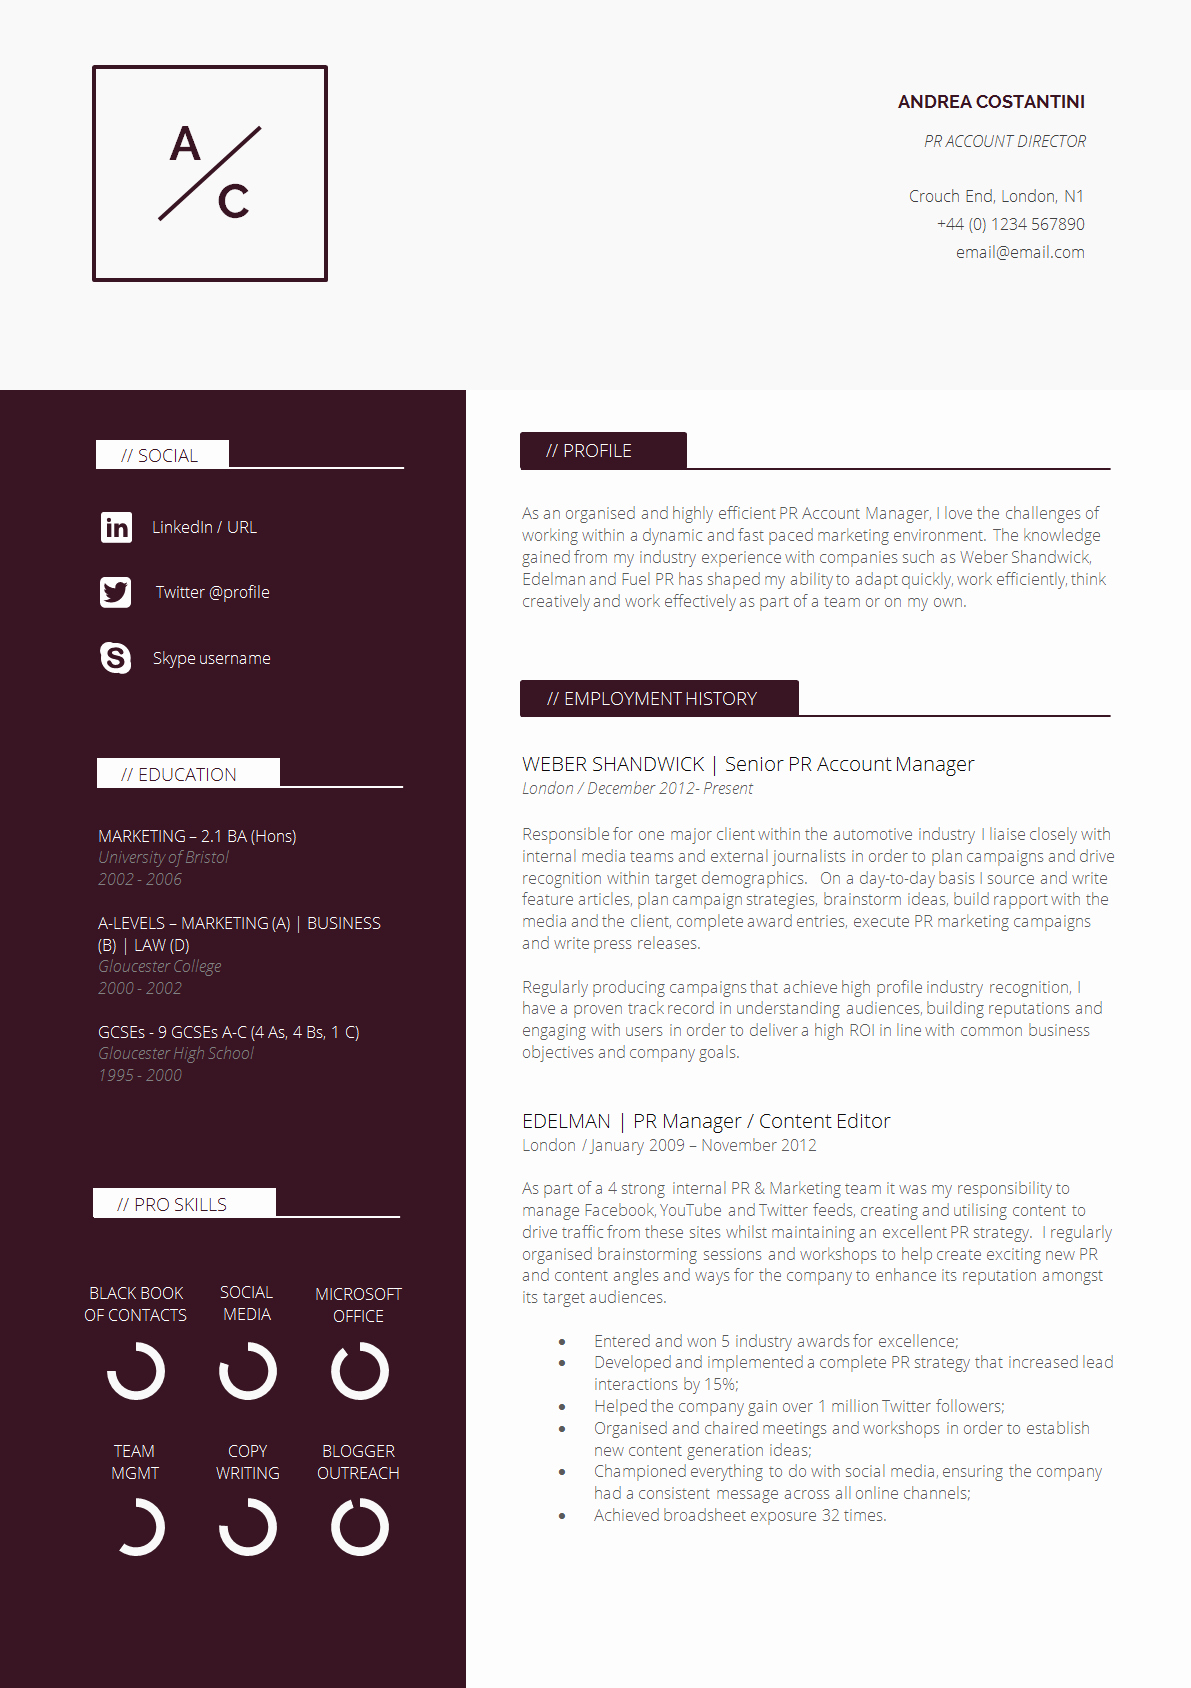 Professional Curriculum Vitae Template Download Lovely 13 Slick and Highly Professional Cv Templates